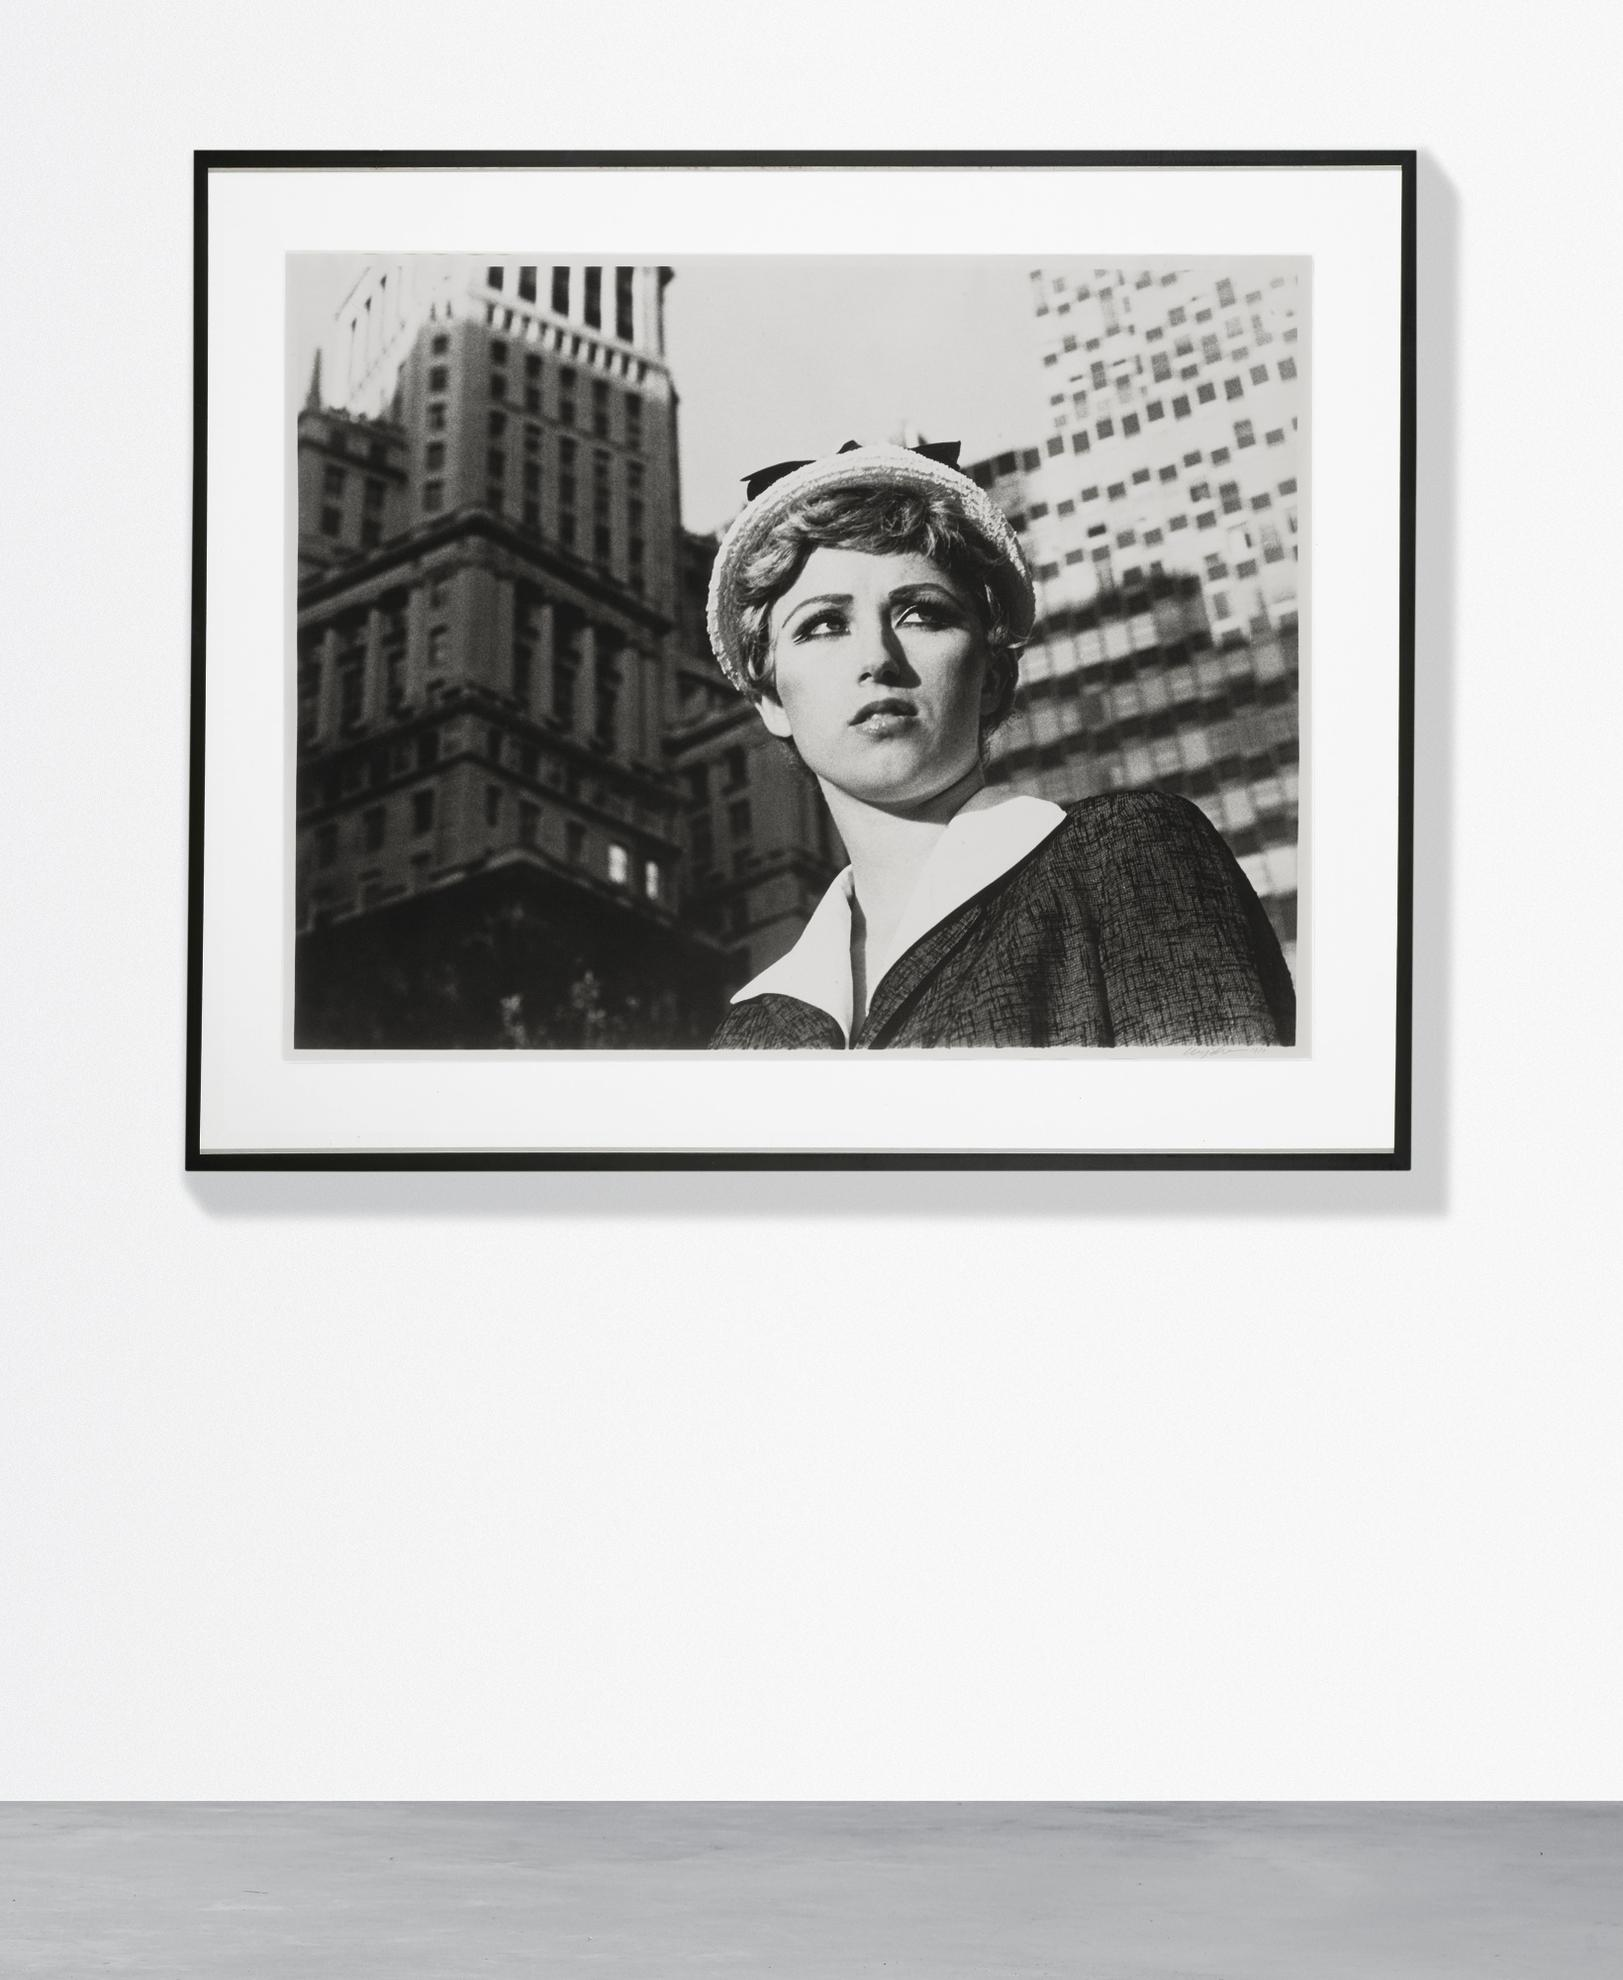 Cindy Sherman-Untitled Film Still #21A, City Girl Close-Up-1978